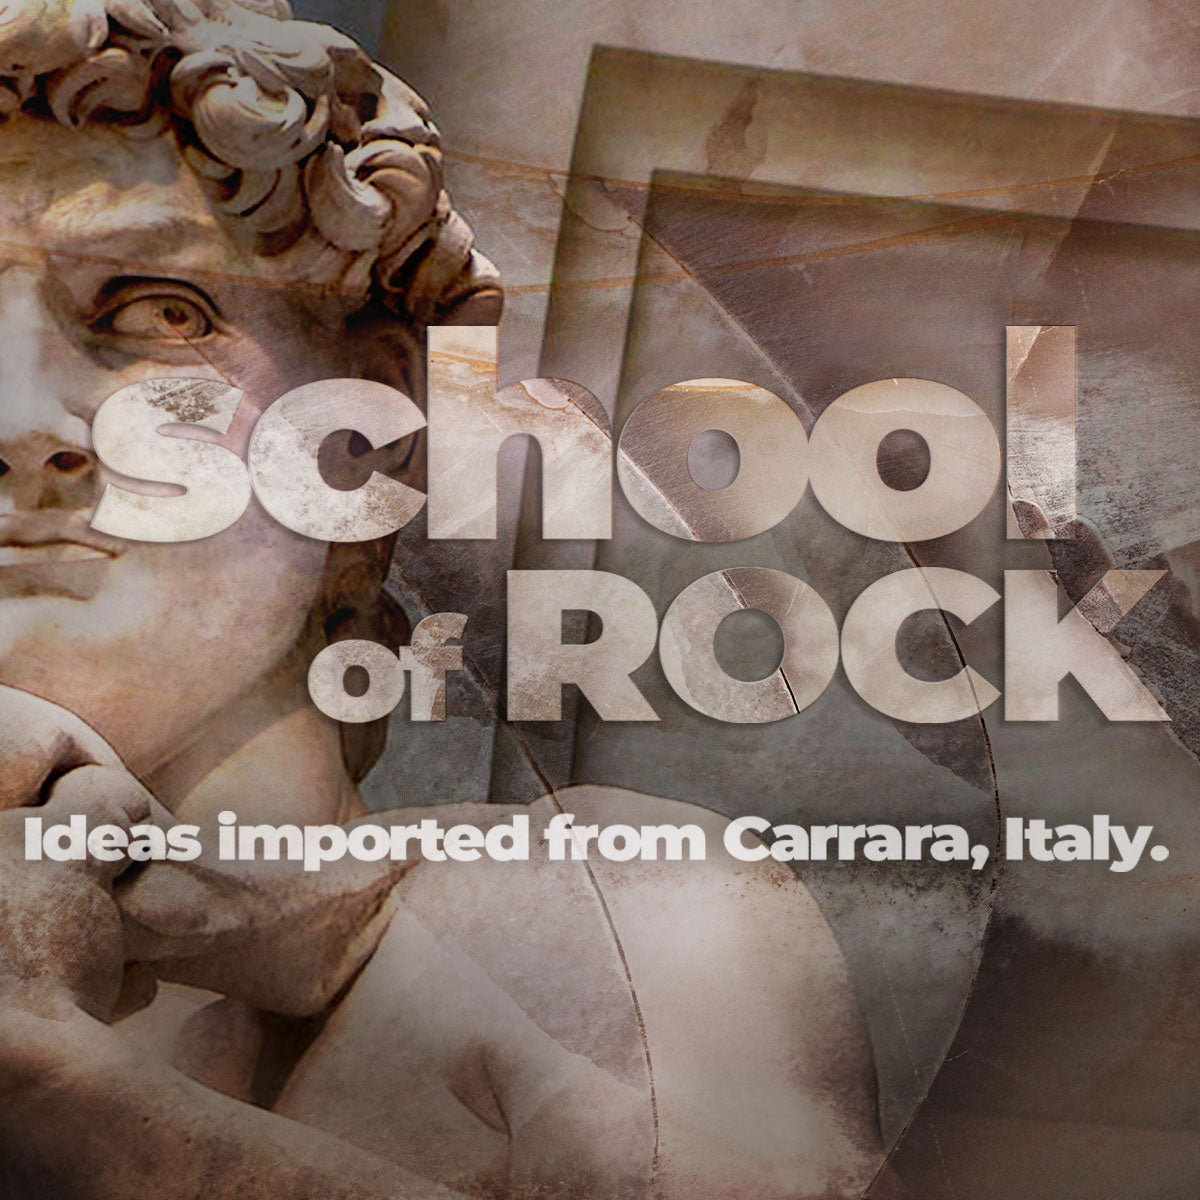 School of Rock Collection - Ideas imported from Carrara, Italy.